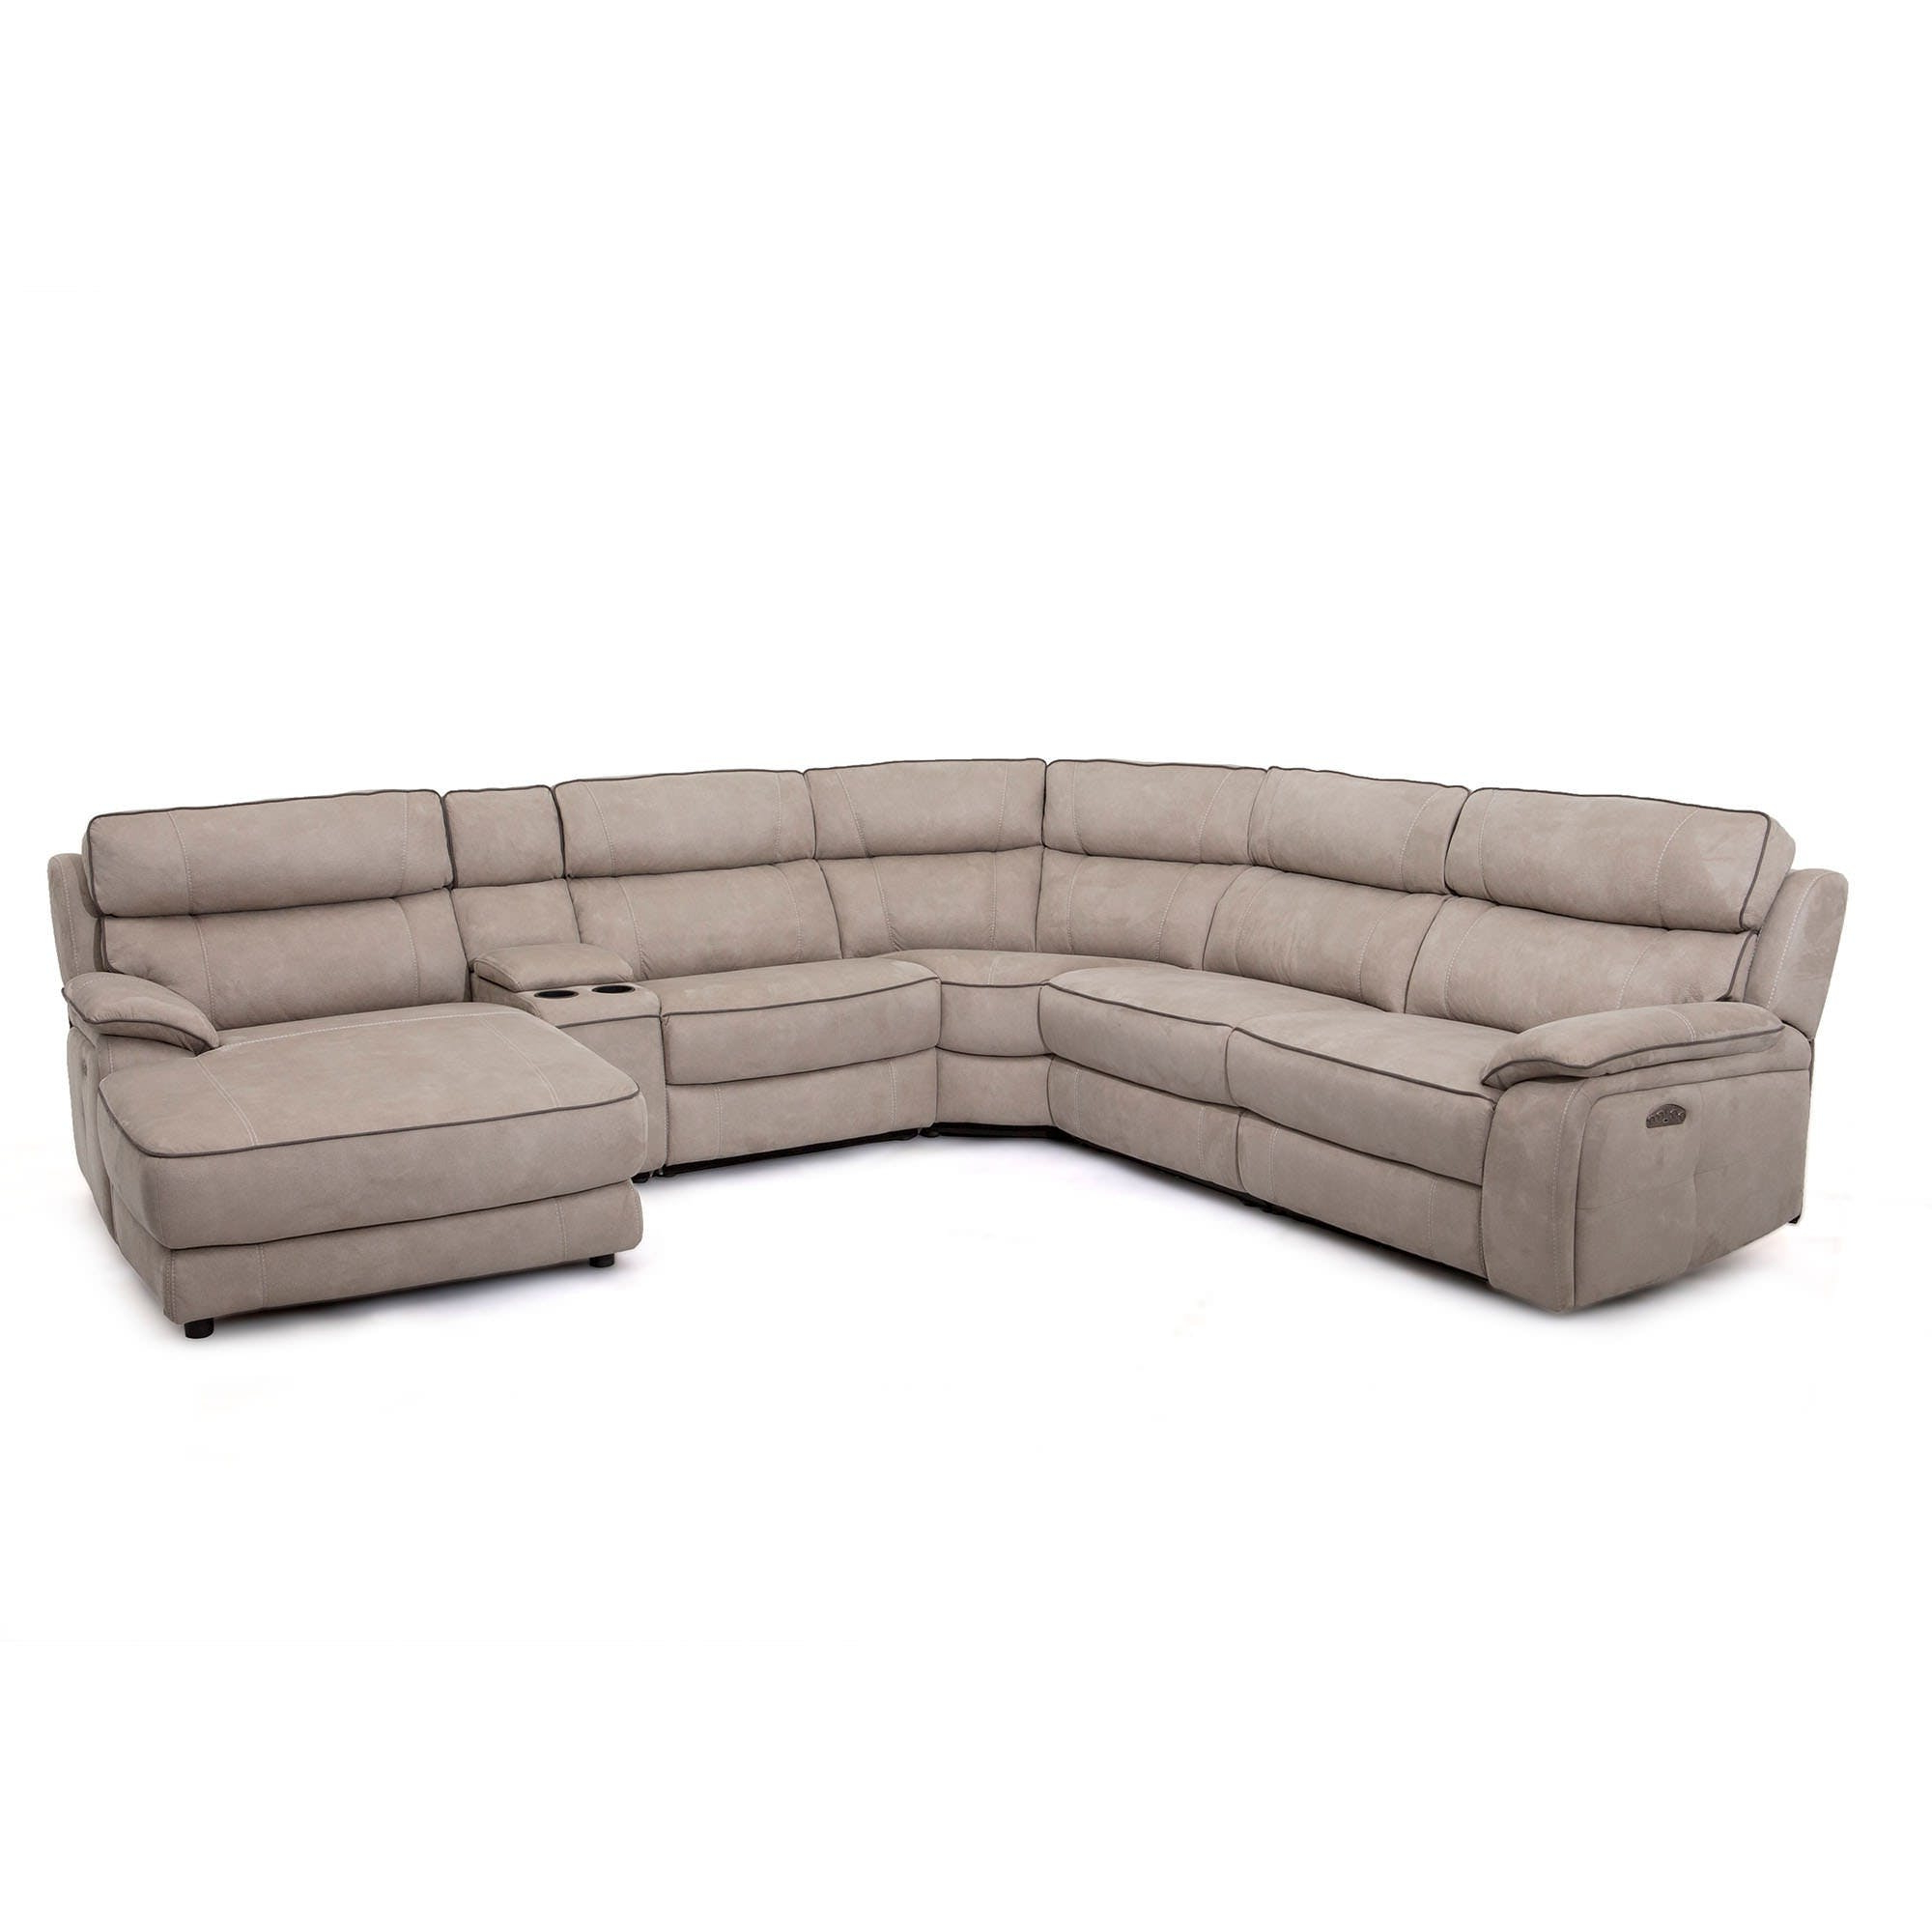 Current Kristen Silver Grey 6 Piece Power Reclining Sectionals Inside Silver Grey 6 Piece Power Reclining Sectional With Power Headrest (View 1 of 20)